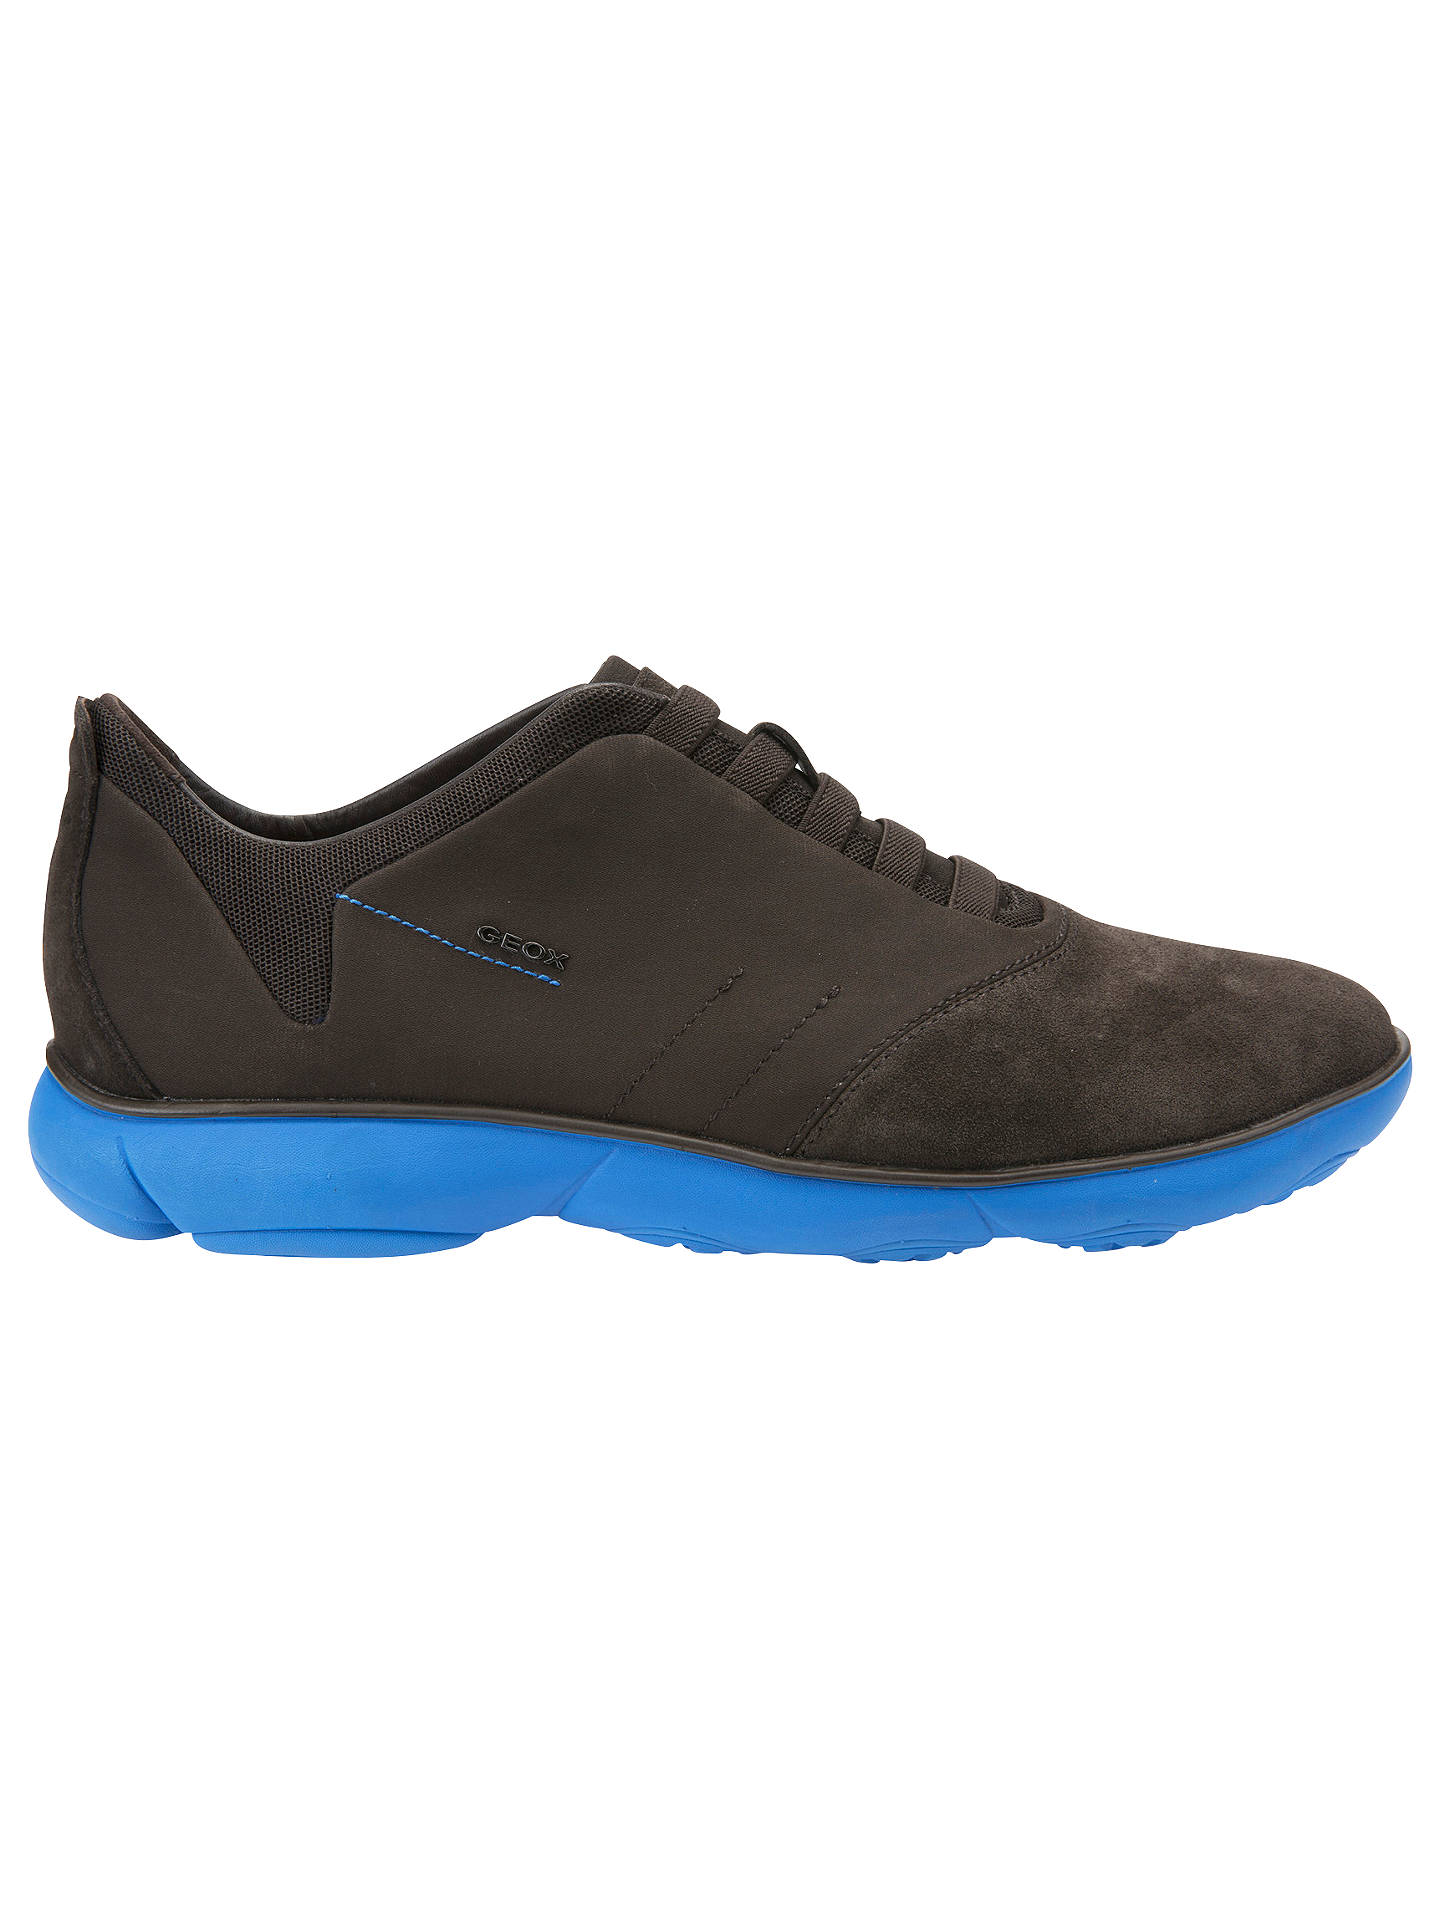 602ccd47d06d8a Buy Geox Nebula Trainers, Coffee/Blue, 7 Online at johnlewis.com ...